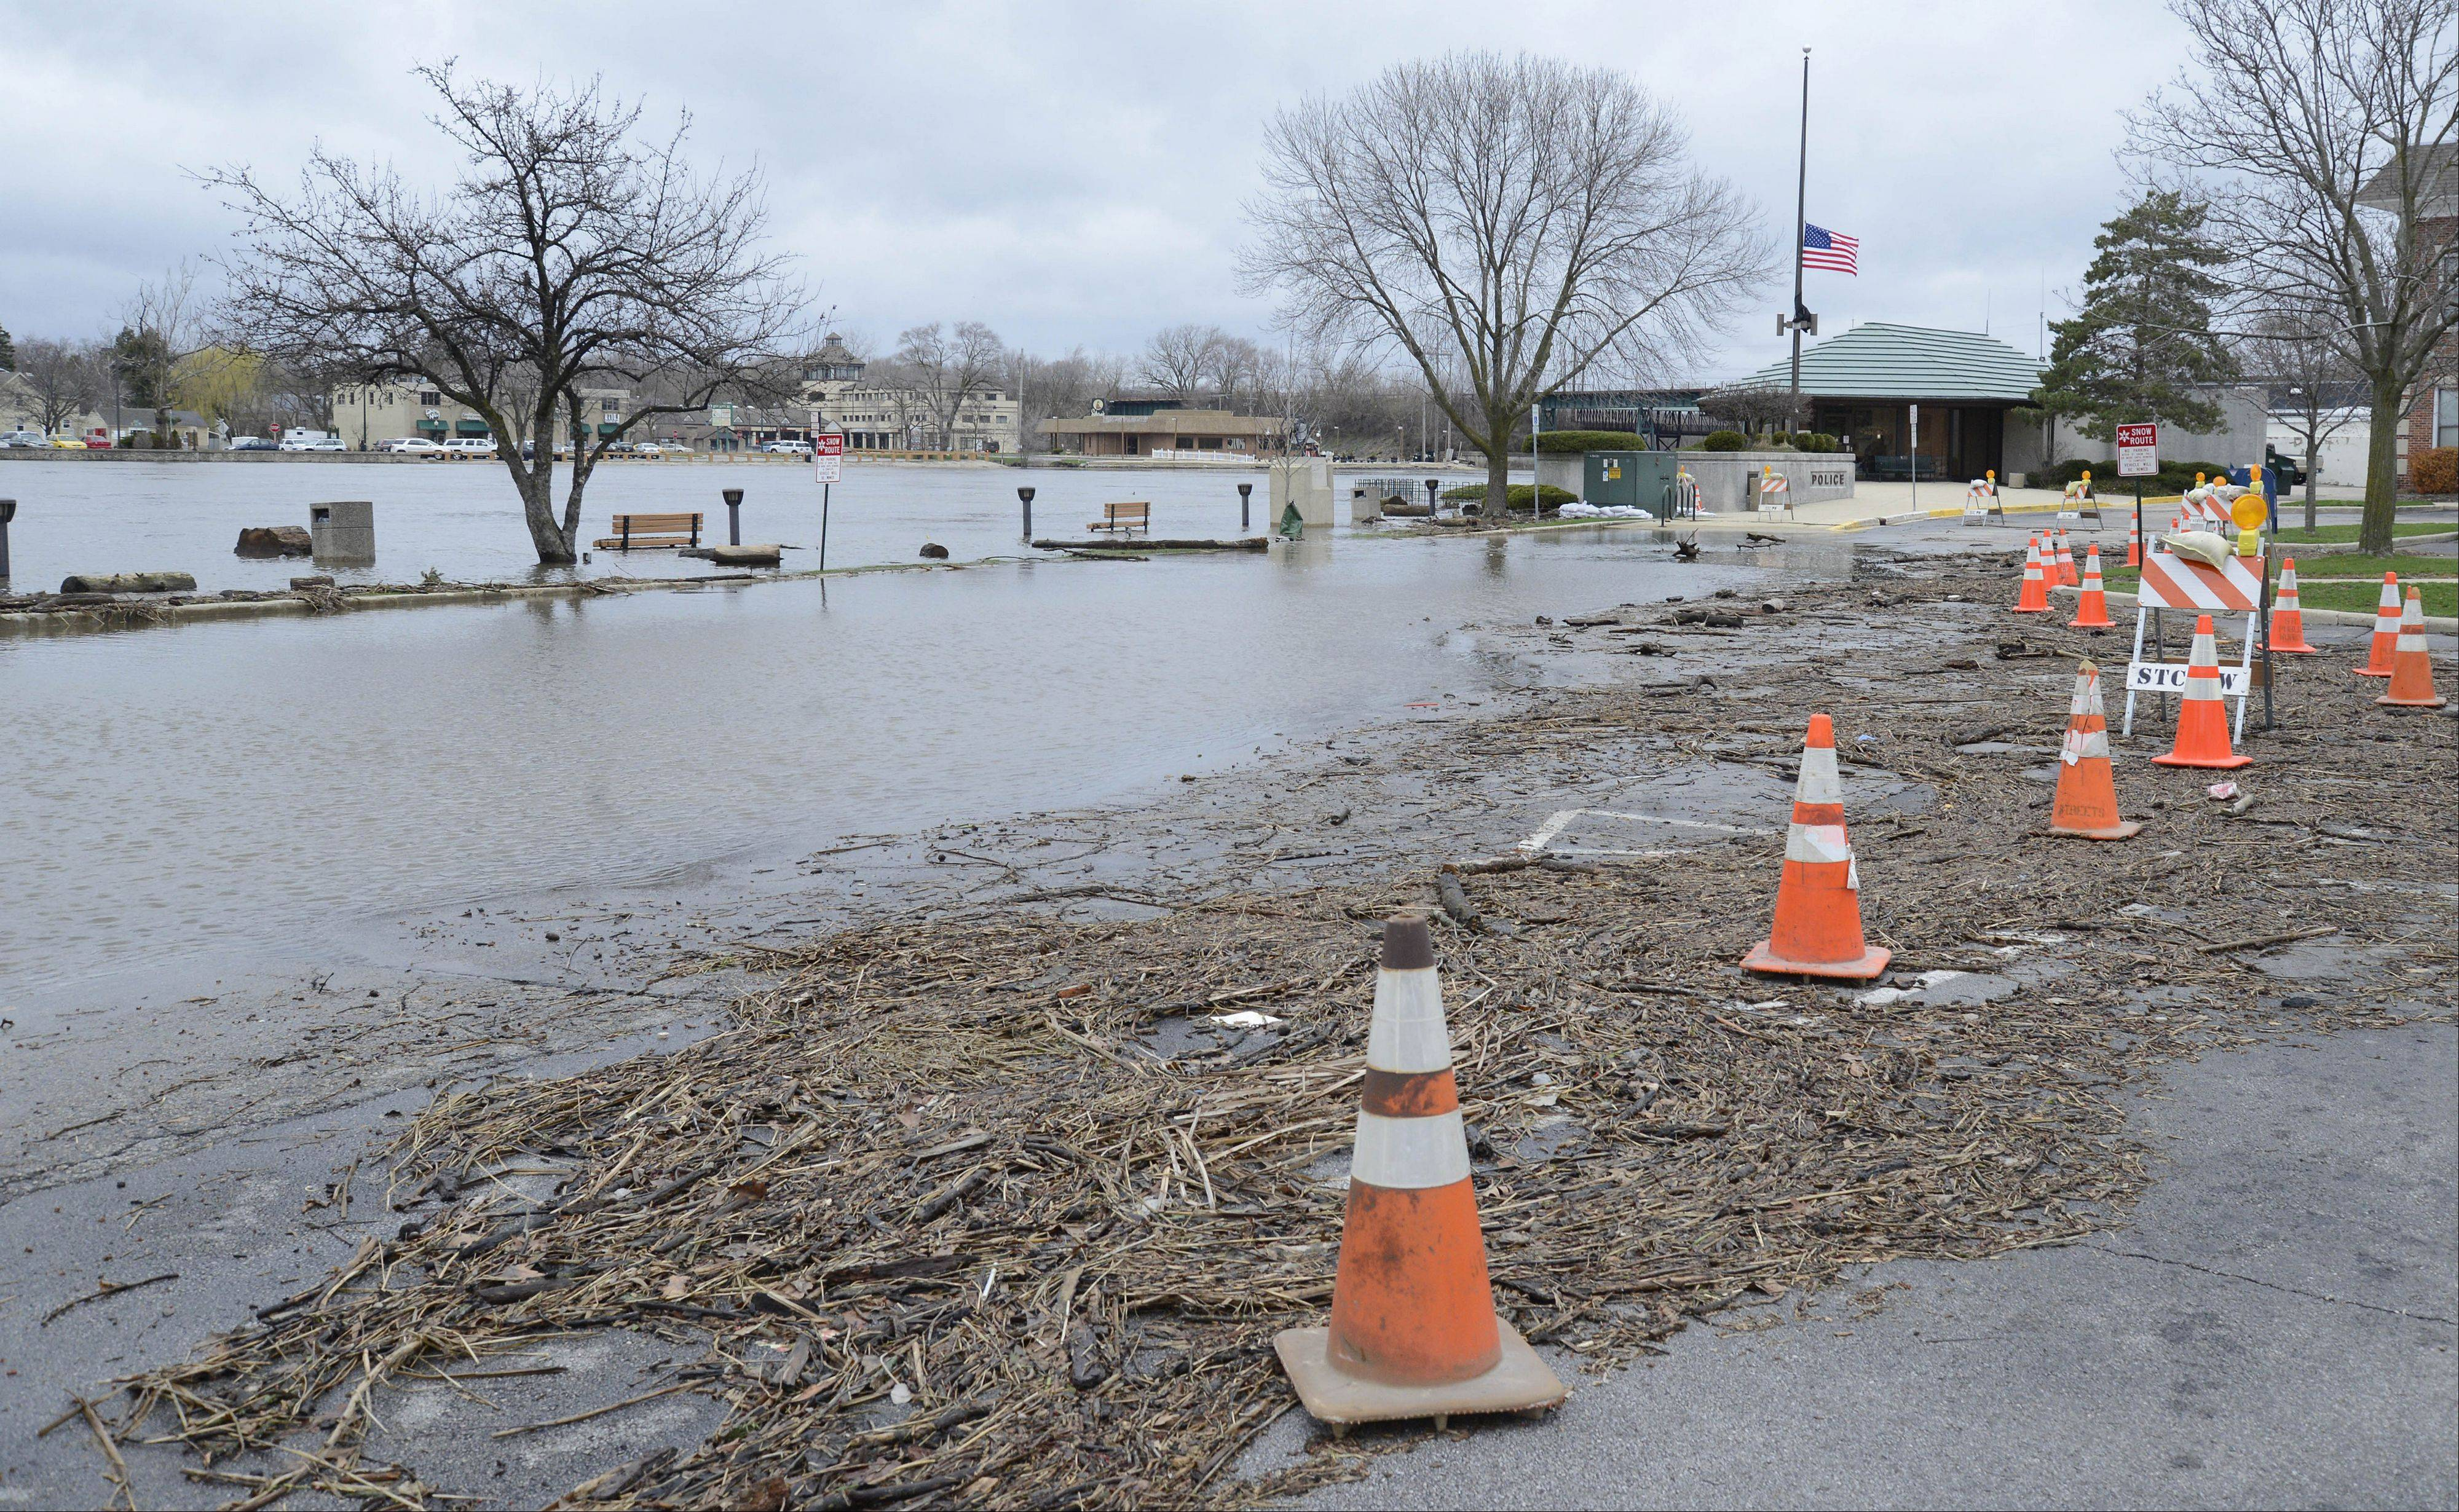 St. Charles residents will have a special trash collection next week for flood-damaged items. This photo shows the flooded parking lot near the St. Charles Municipal Center and Police Department on Friday.